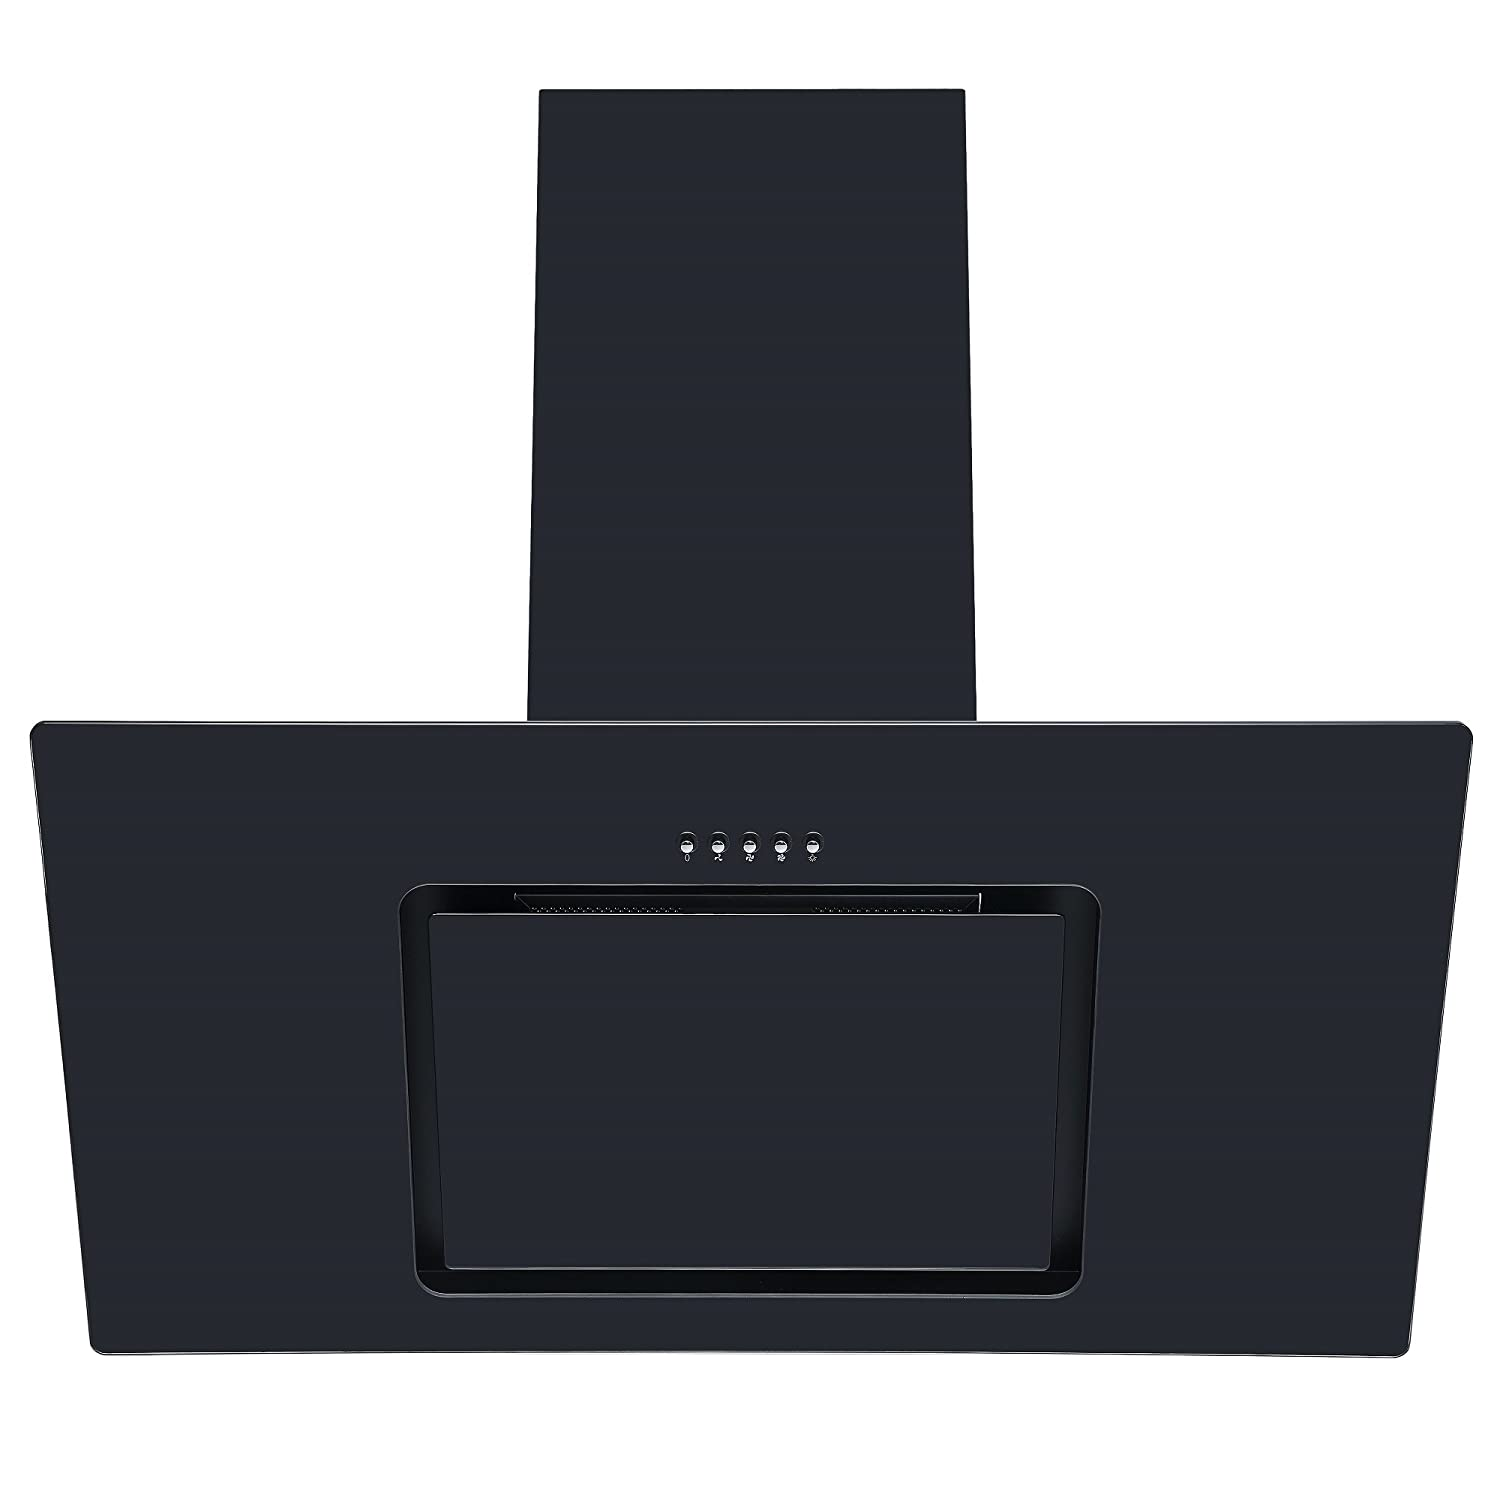 Cookology VER901BK 90cm Black Angled Glass Chimney Cooker Hood Kitchen Extractor [Energy Class C]